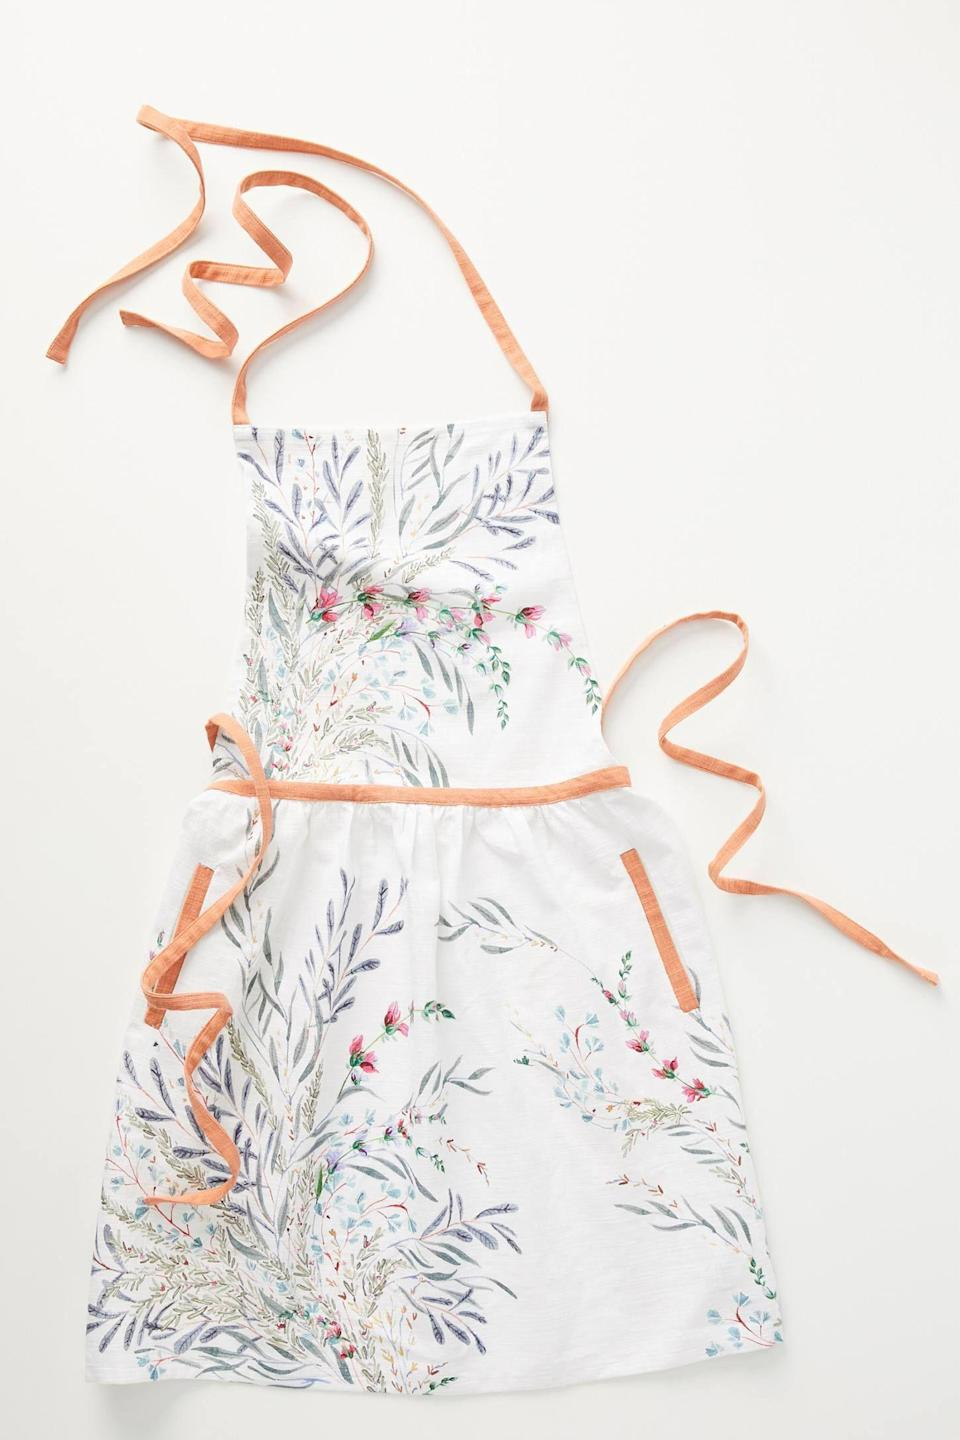 "<p><strong>Anthropologie</strong></p><p>anthropologie.com</p><p><strong>$34.00</strong></p><p><a href=""https://go.redirectingat.com?id=74968X1596630&url=https%3A%2F%2Fwww.anthropologie.com%2Fshop%2Fprintemps-apron&sref=https%3A%2F%2Fwww.cosmopolitan.com%2Flifestyle%2Fg32071922%2Fcancer-zodiac-gifts%2F"" rel=""nofollow noopener"" target=""_blank"" data-ylk=""slk:Shop Now"" class=""link rapid-noclick-resp"">Shop Now</a></p><p>No matter what Cancer is obsessed with cooking at the moment, spruce up their style in the kitchen by gifting them an apron with a fun and colorful print.</p>"